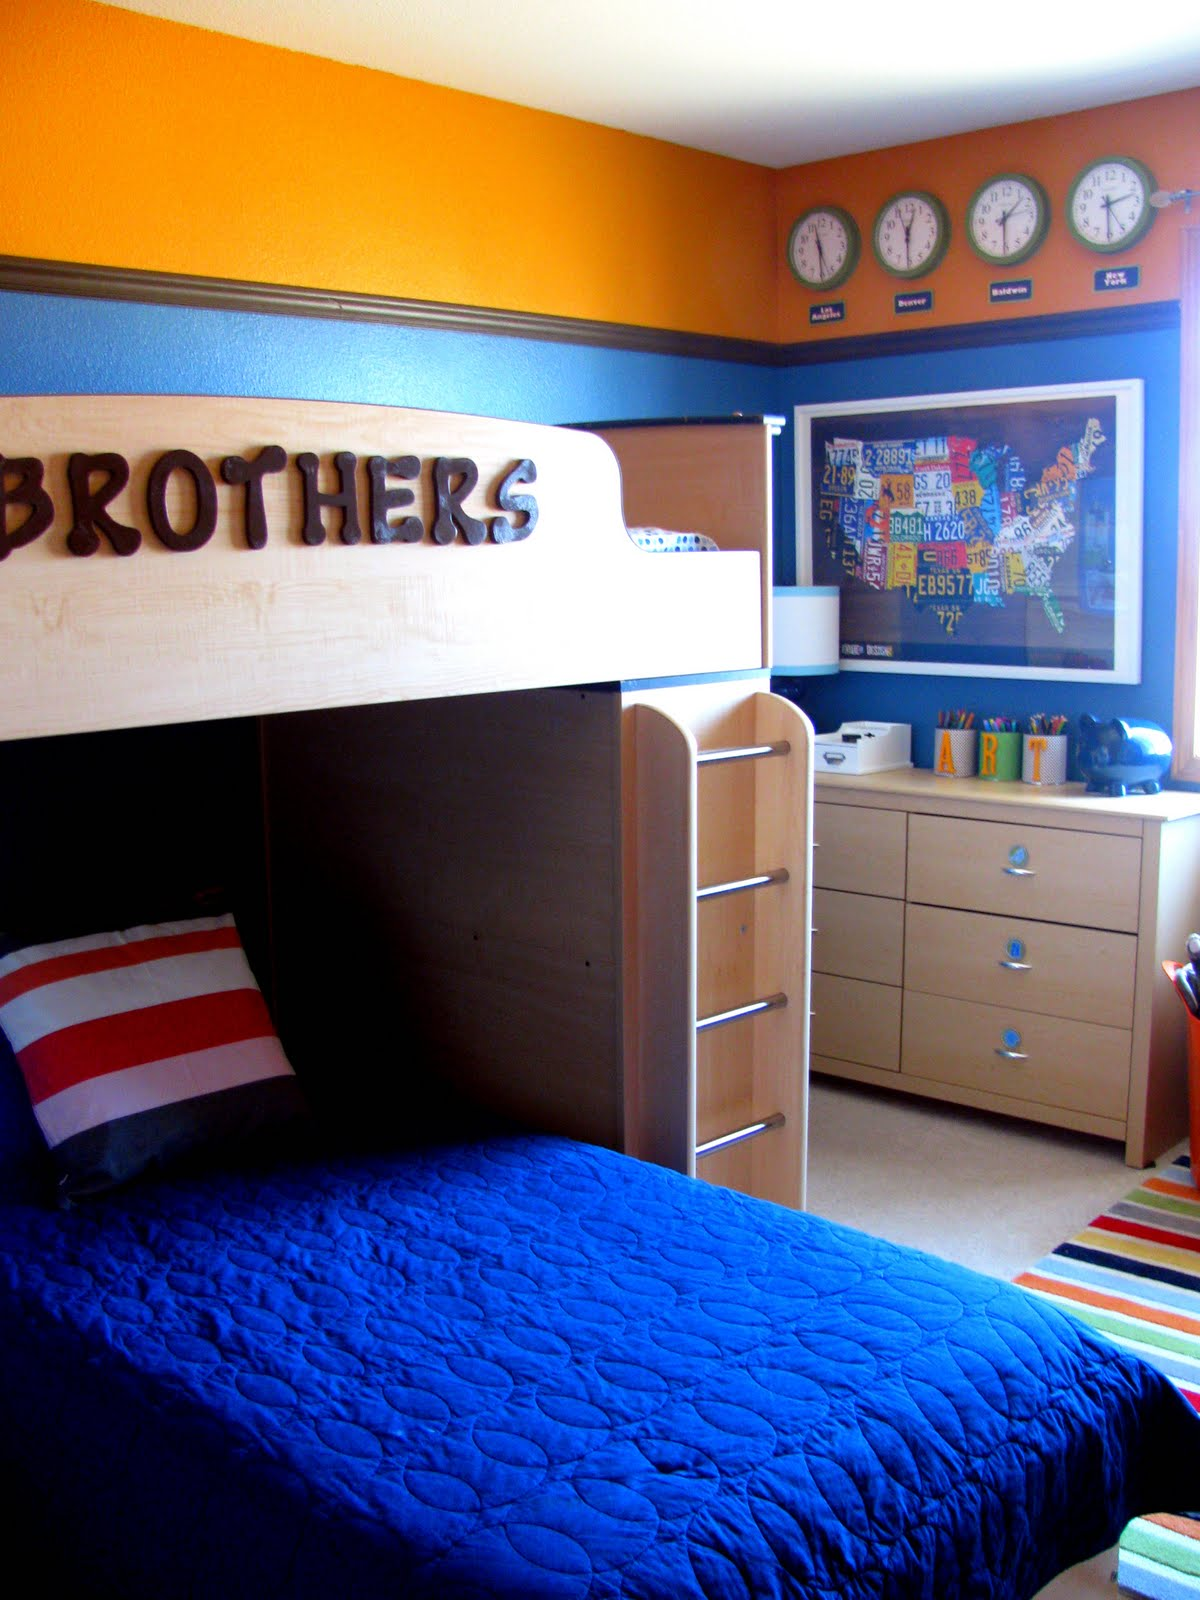 Kids bedroom painting ideas wallpress 1080p hd desktop for Boys room paint ideas